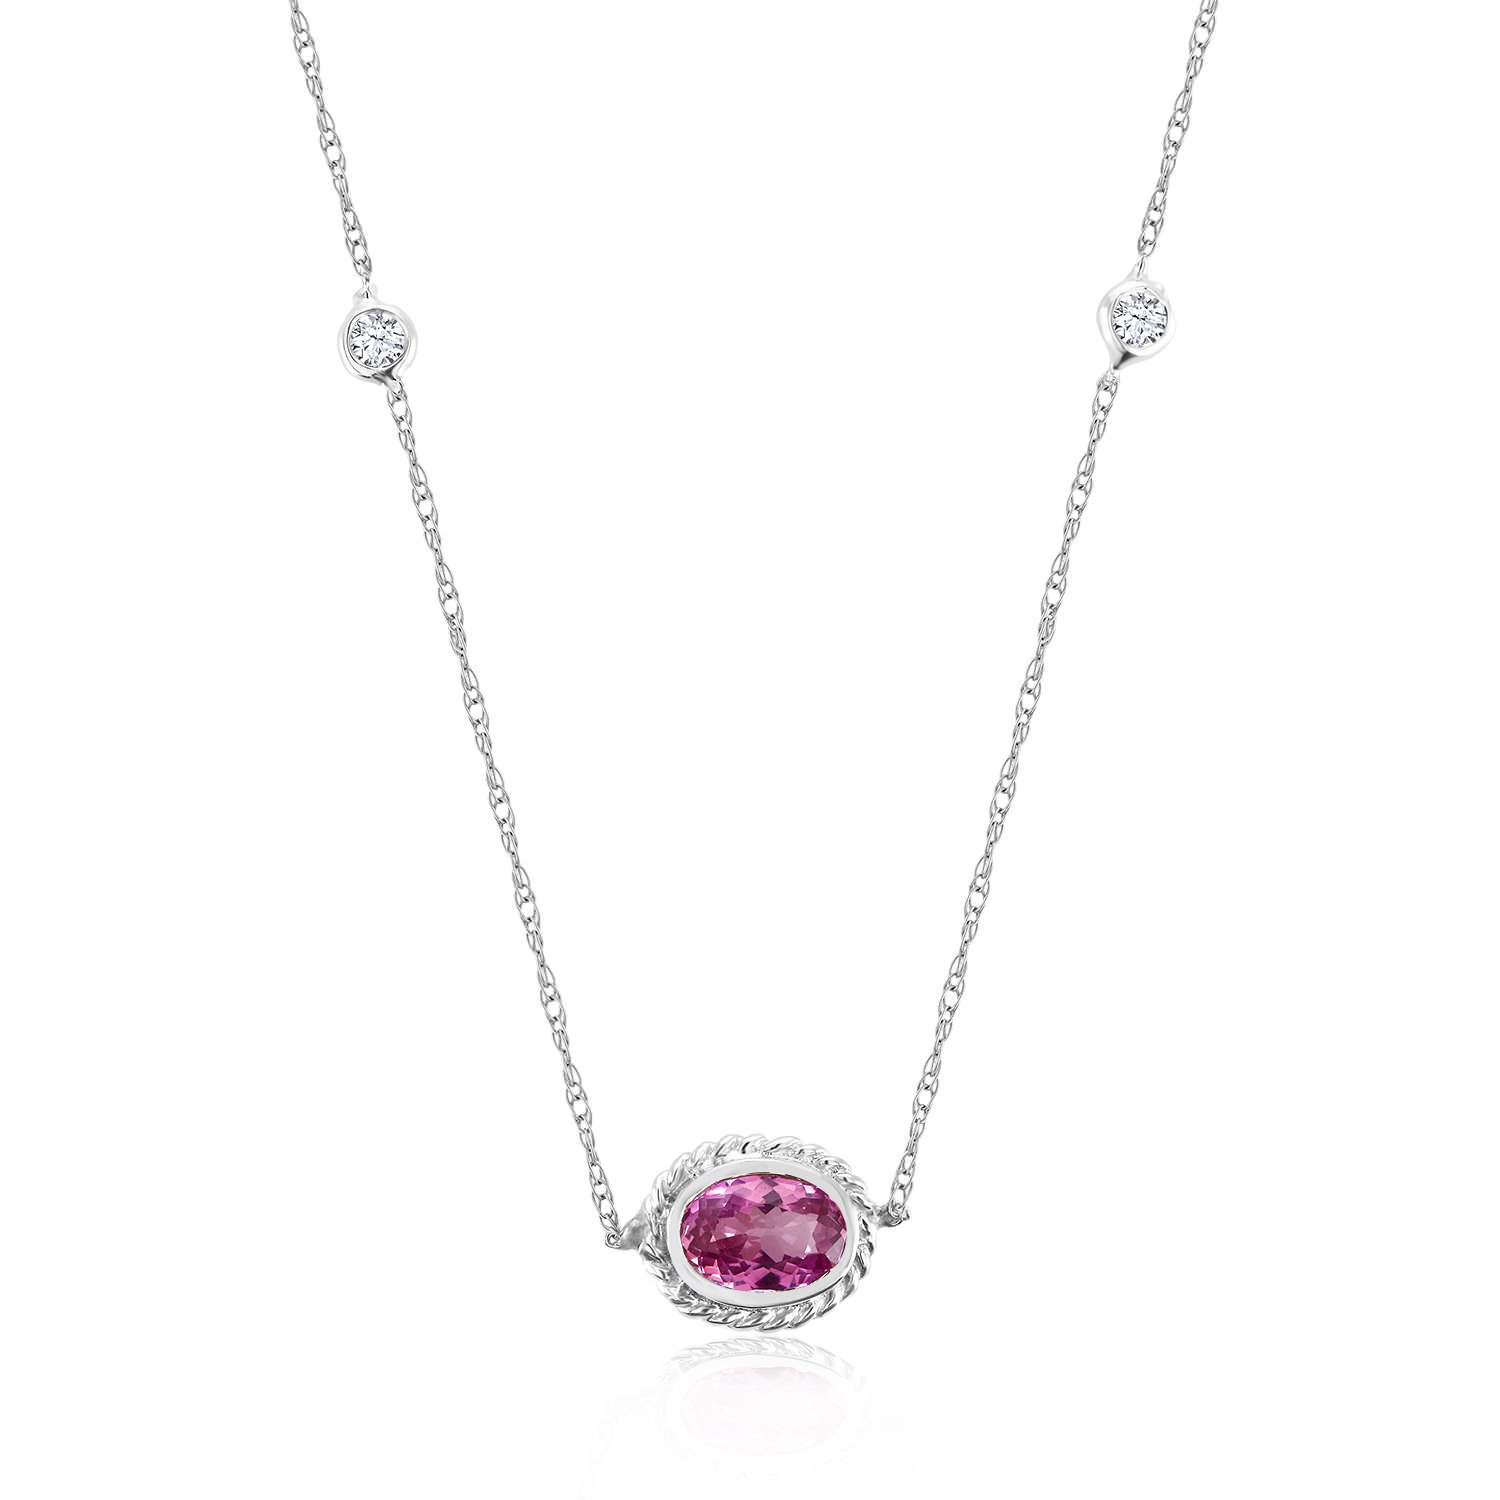 K white gold pendant necklace with bezelset pink sapphire and